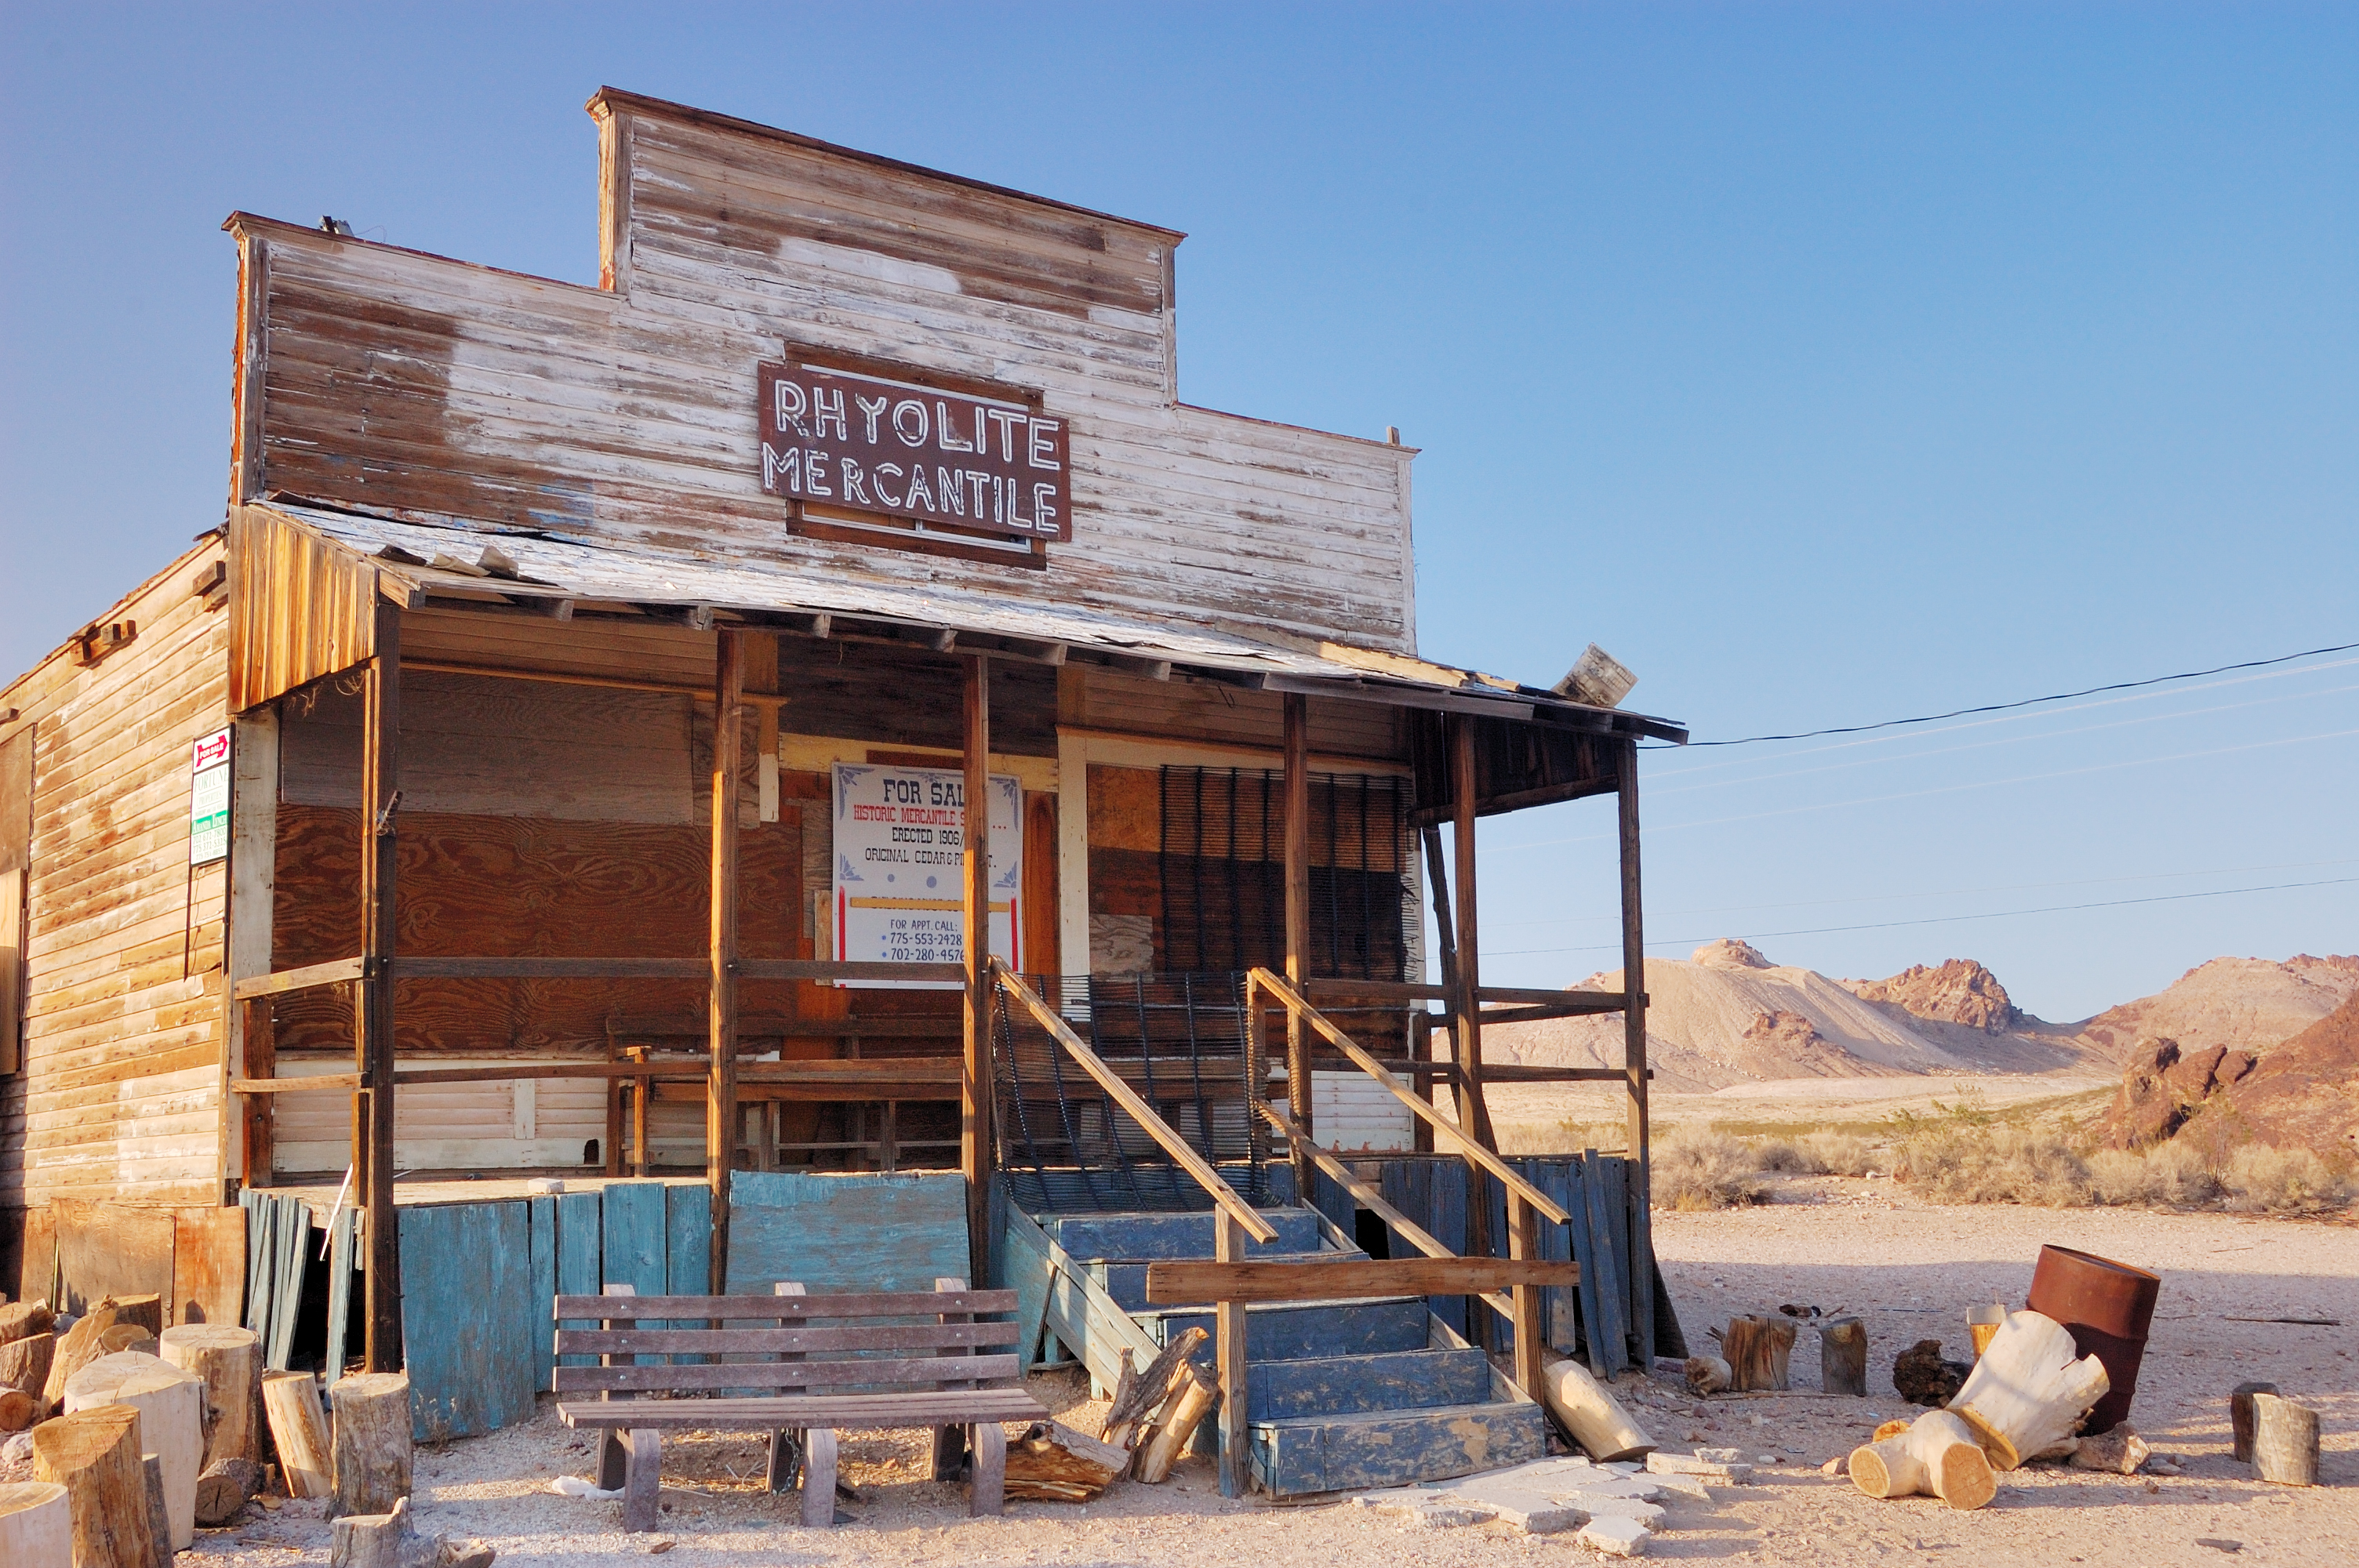 https://upload.wikimedia.org/wikipedia/commons/4/42/Abandoned_Rhyolite_General_Store.jpg